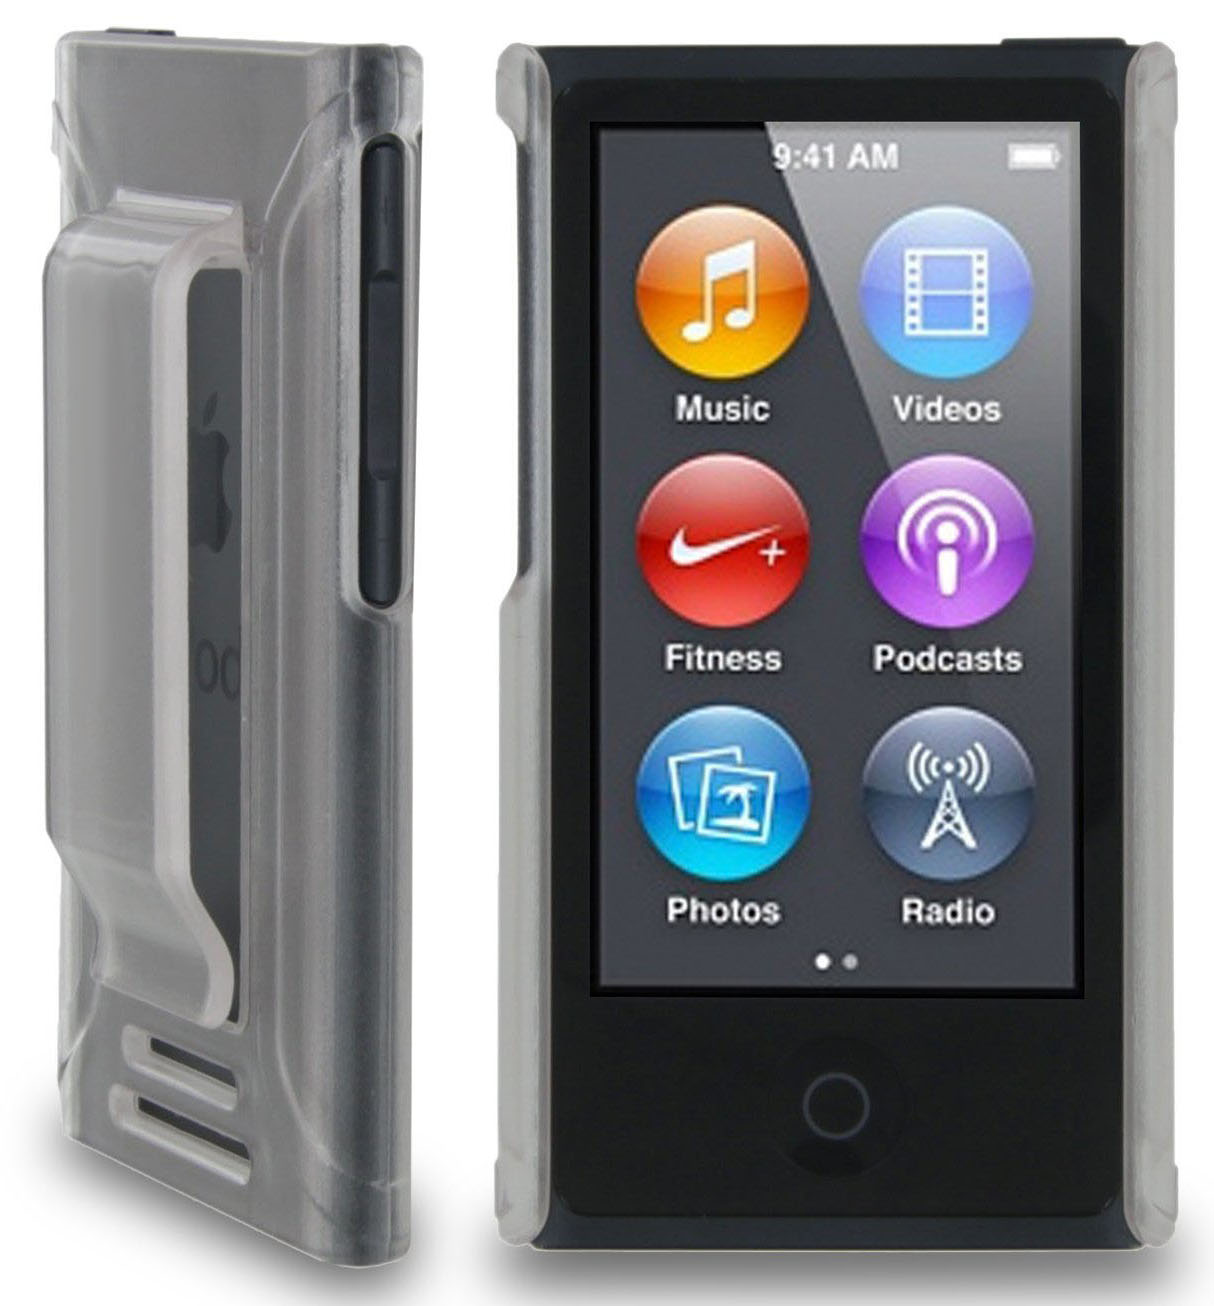 CLEAR FROST HARD CASE COVER WITH BELT CLIP HOLSTER FOR APPLE iPOD NANO 7 7th 8th GEN GENERATION